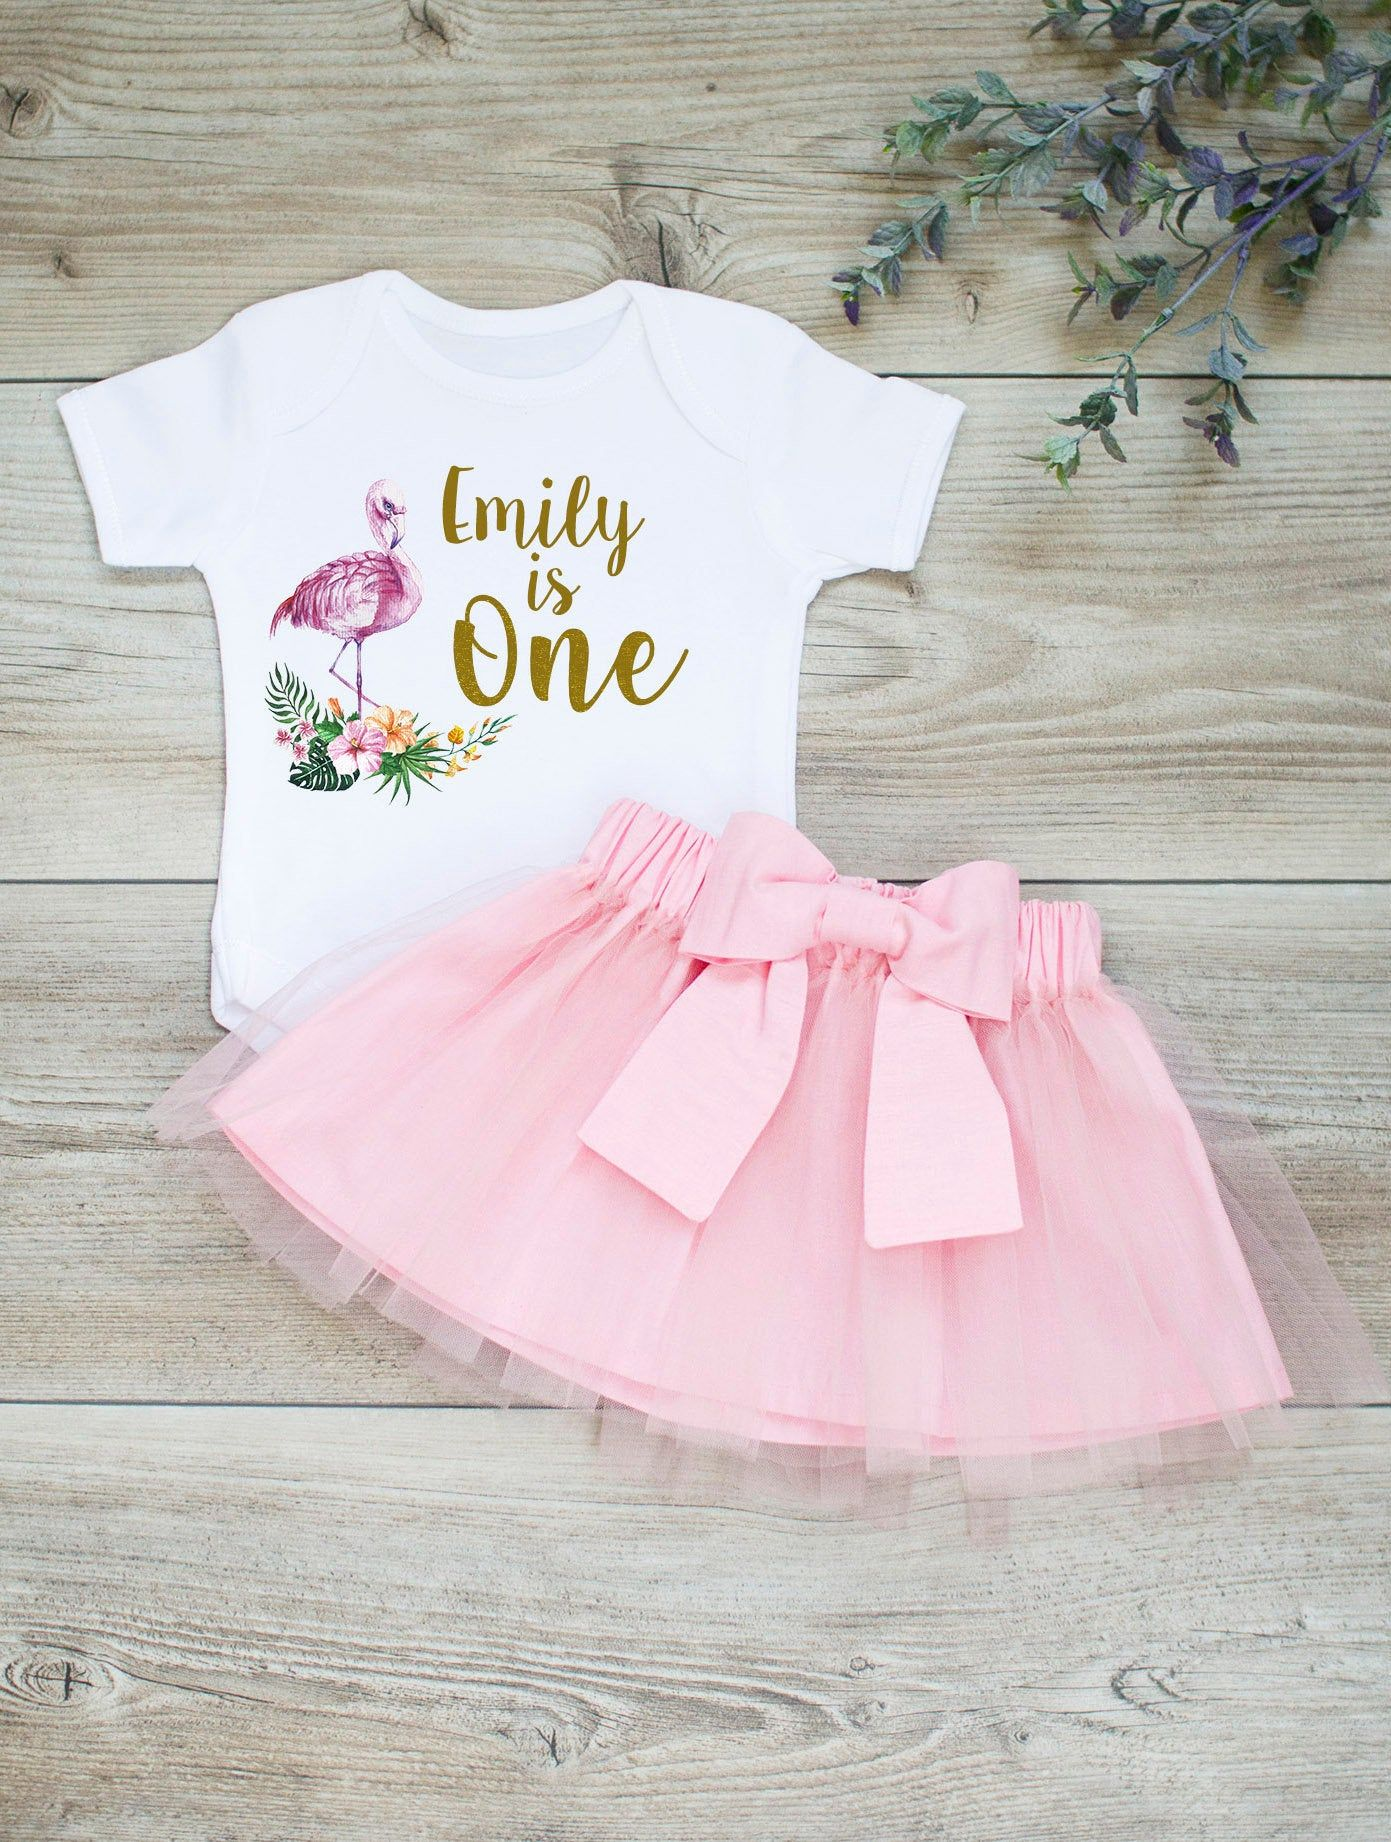 Celebrate your little girls birthday with our super cut flamingo 1st birthday outfit! We created it as a perfect choice for those, who adore boho style, tropical flowers and warm colours. Your little girl will look absolutely gorgeous! This birthday tutu outfit is handmade with love in Northern Europe. As we value not only great style, but comfort for your baby too. We use fabrics that are certified according to STANDARD 100 by OEKO-TEX. This pink tutu skirt is made with lots of care and attenti